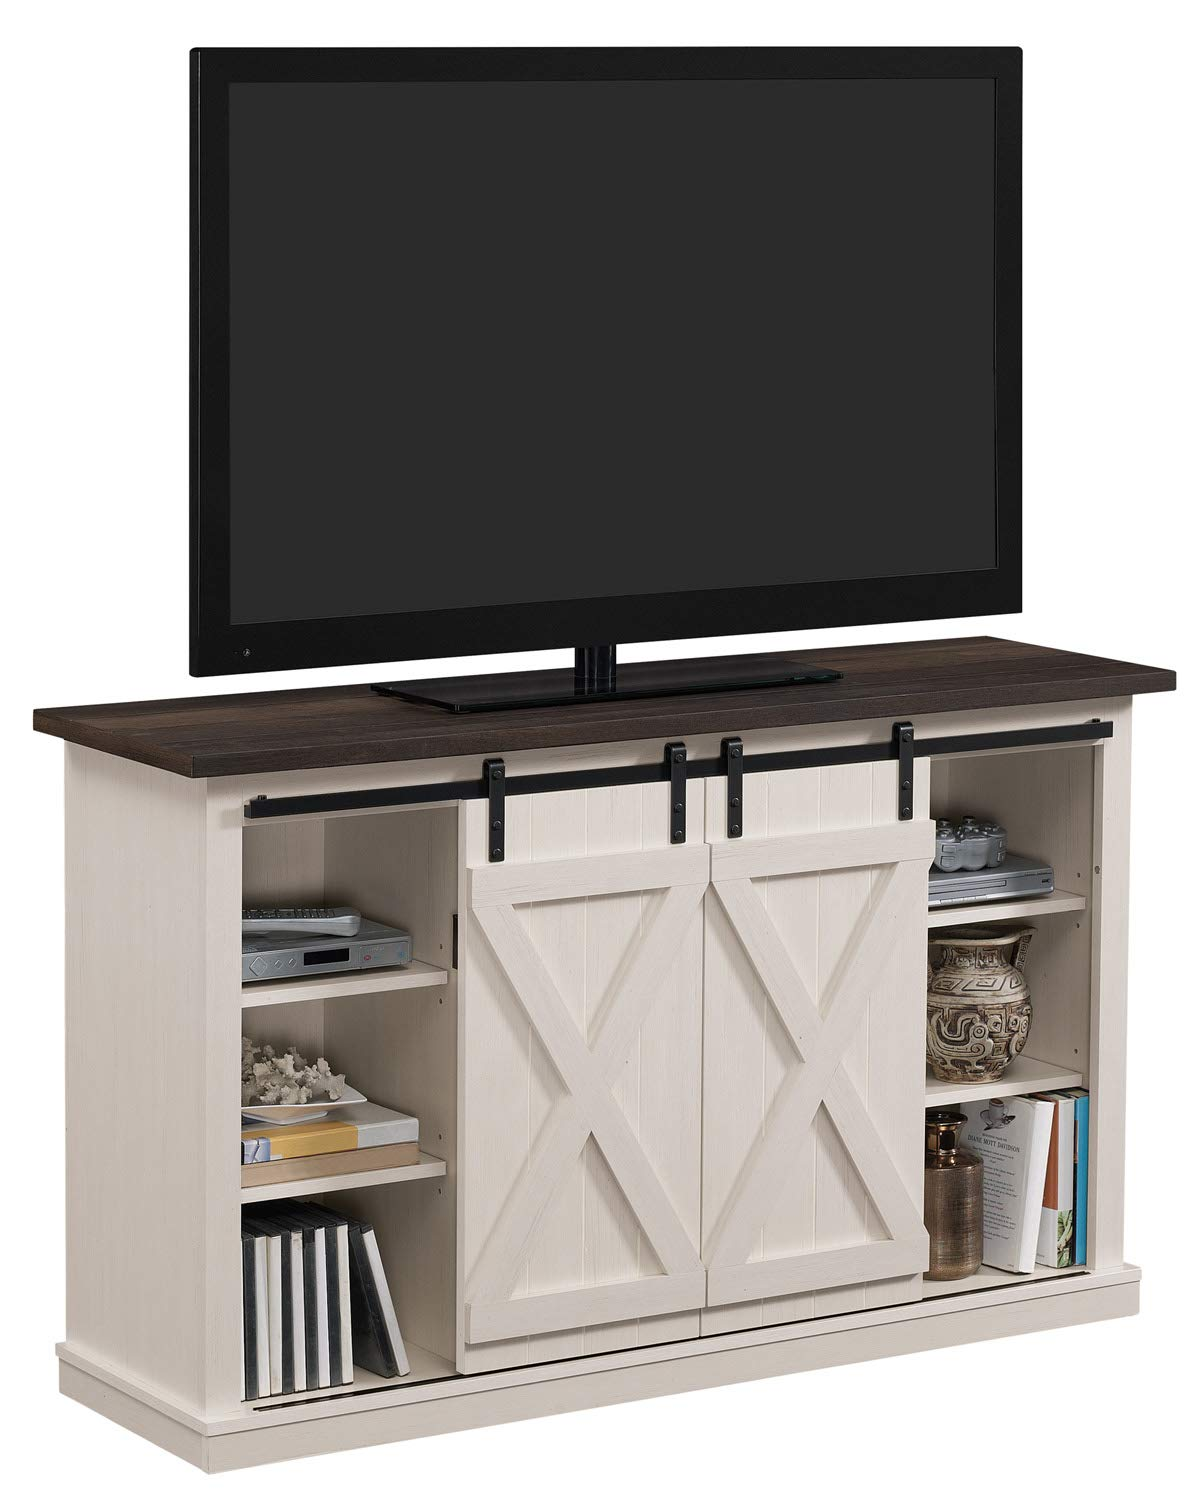 Tangkula TV Stand, Classic Design Wood Storage Console Free Standing Cabinet for TV up to 45 , Media Entertainment Center Home Living Room Furniture, TV Stand Cabinet Brown